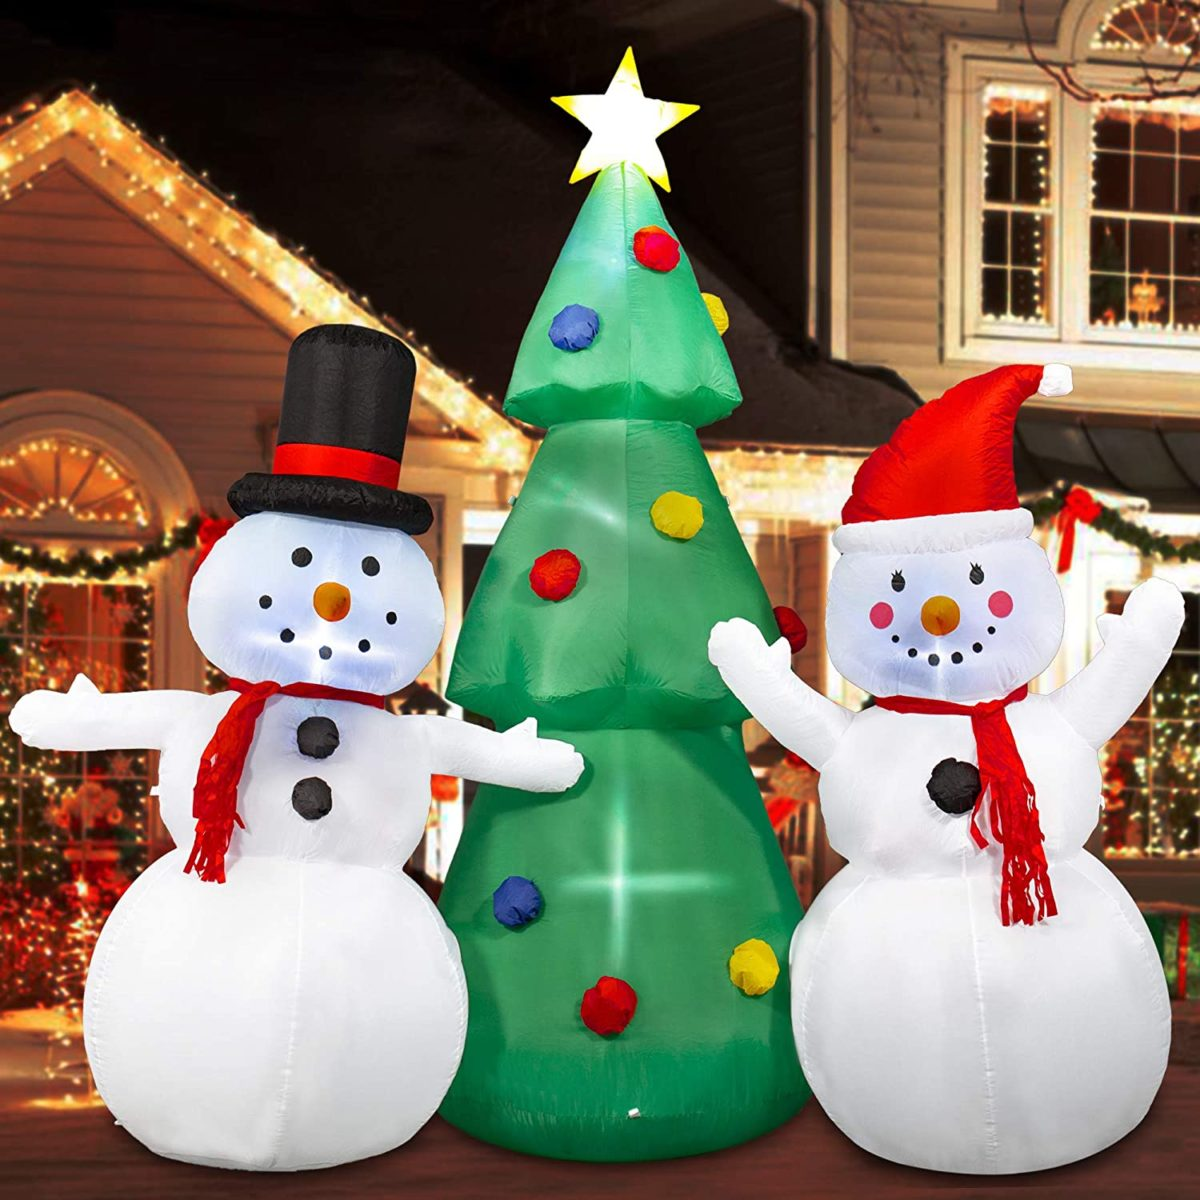 40 christmas decorations that will leave you and anyone else who enters your home with much holiday cheer   parenting questions   mamas uncut 81z8p9fbpnl. ac sl1500